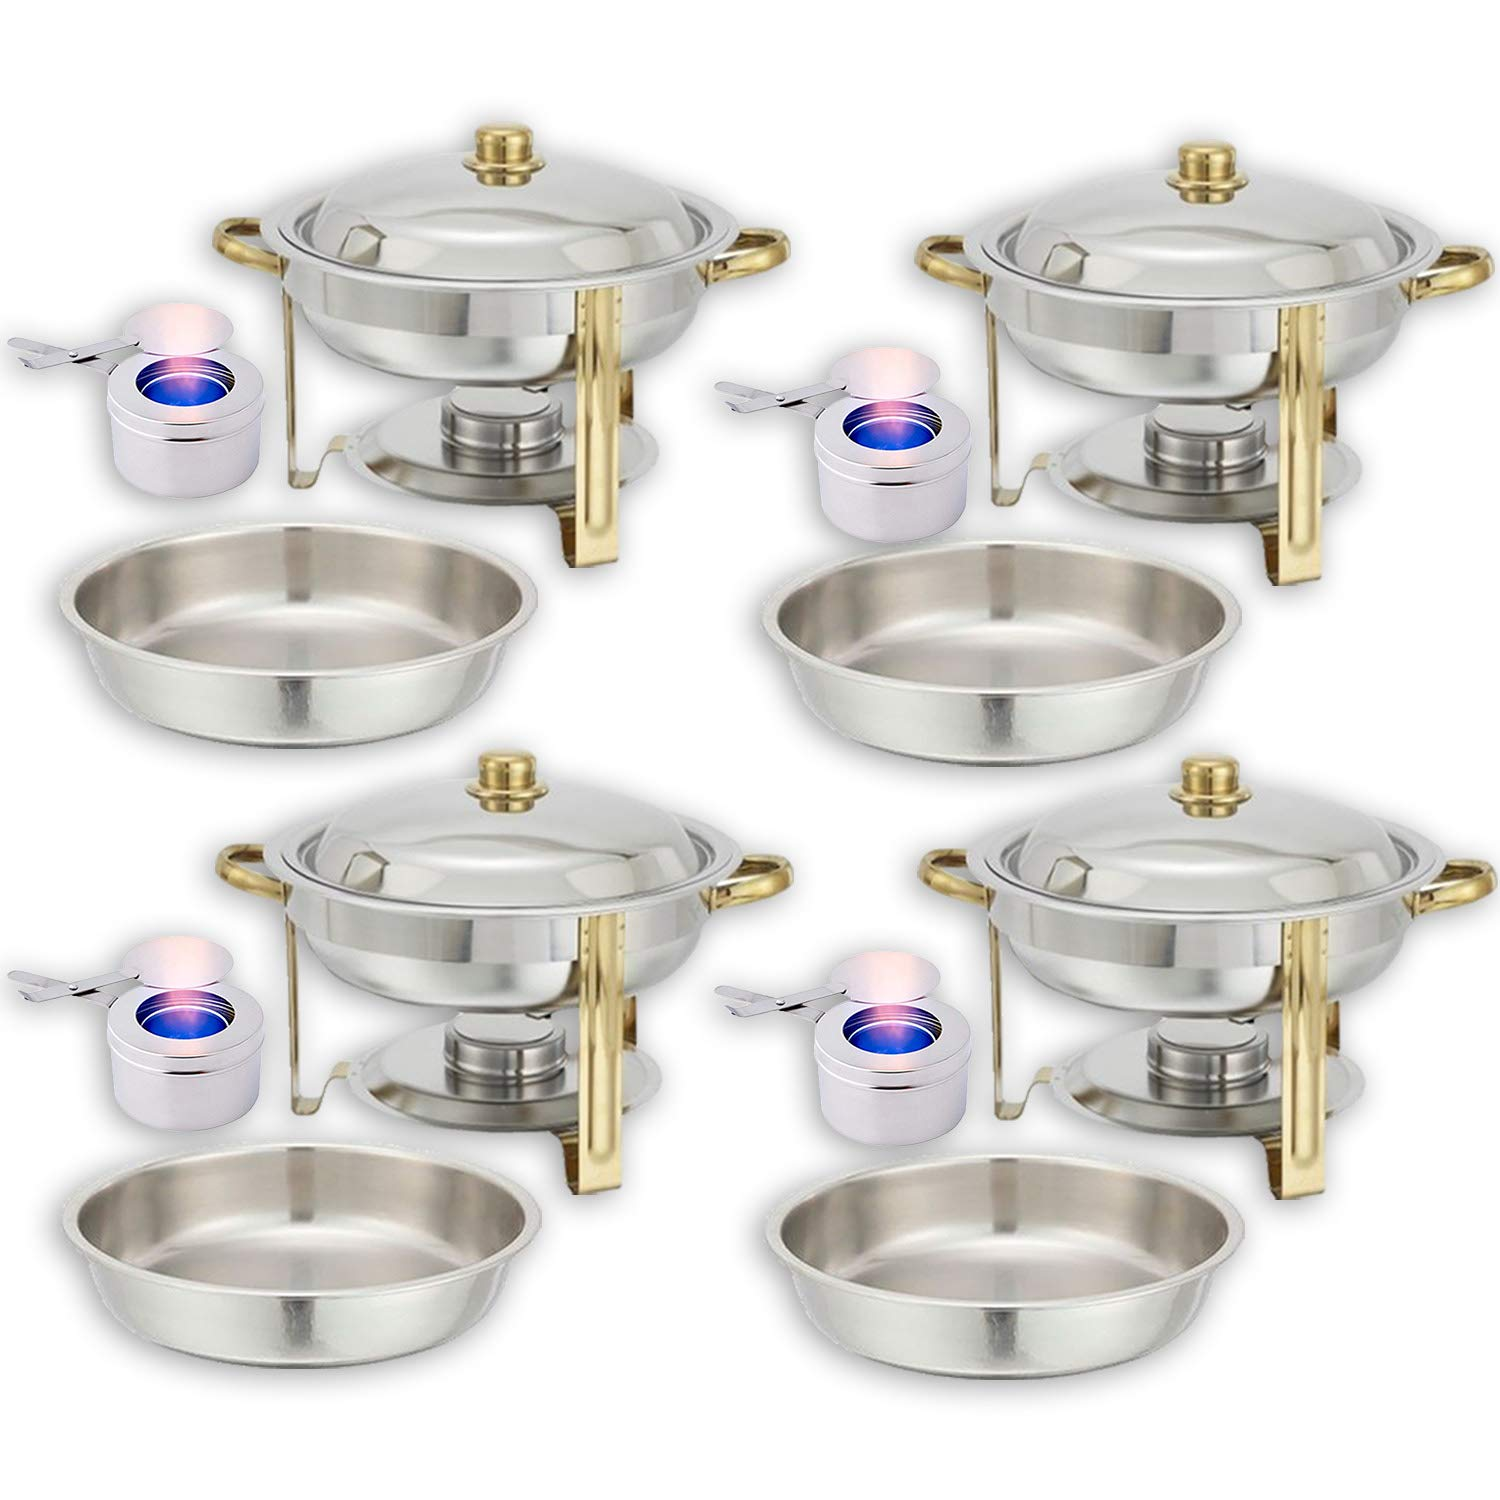 Round Chafing Dish Buffet Set - Water Pan + Food Pan (4 qt) + Frame + Fuel Holders - Stainless-Steel Warmer Kit 4 Pack